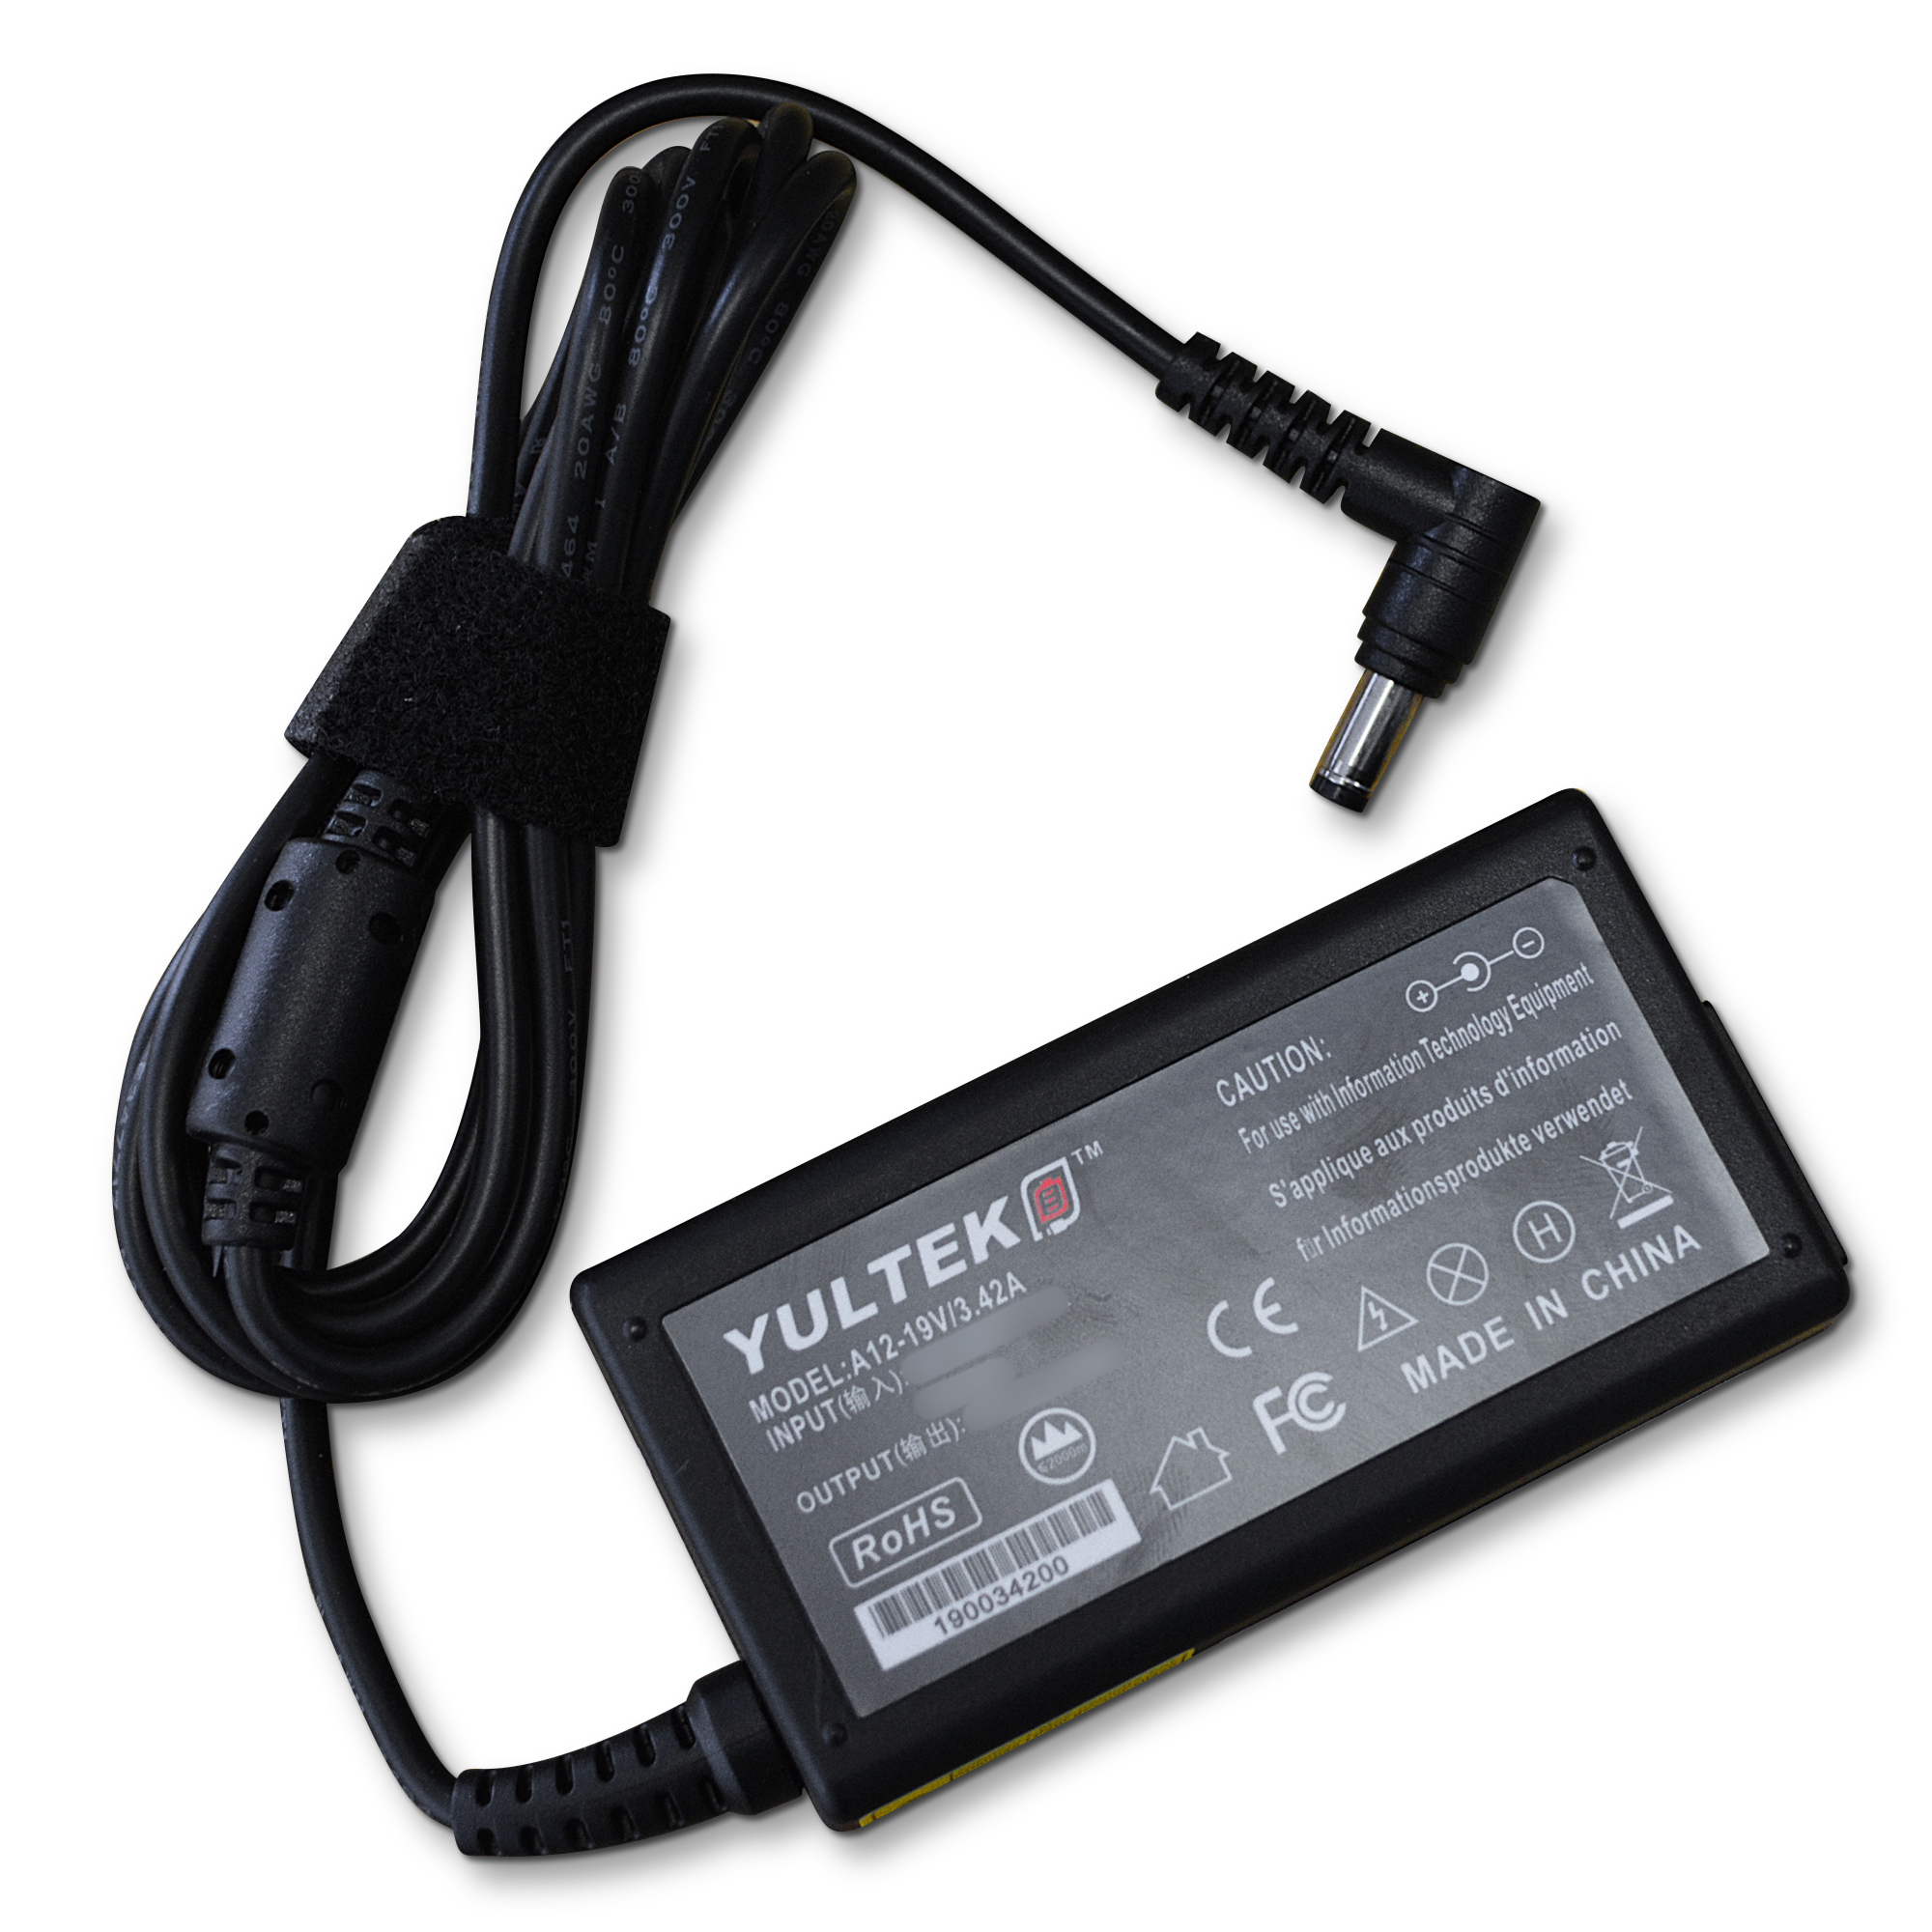 Fujitsu-Siemens Part Number UWL:76G01B65R-5A Laptop Charger